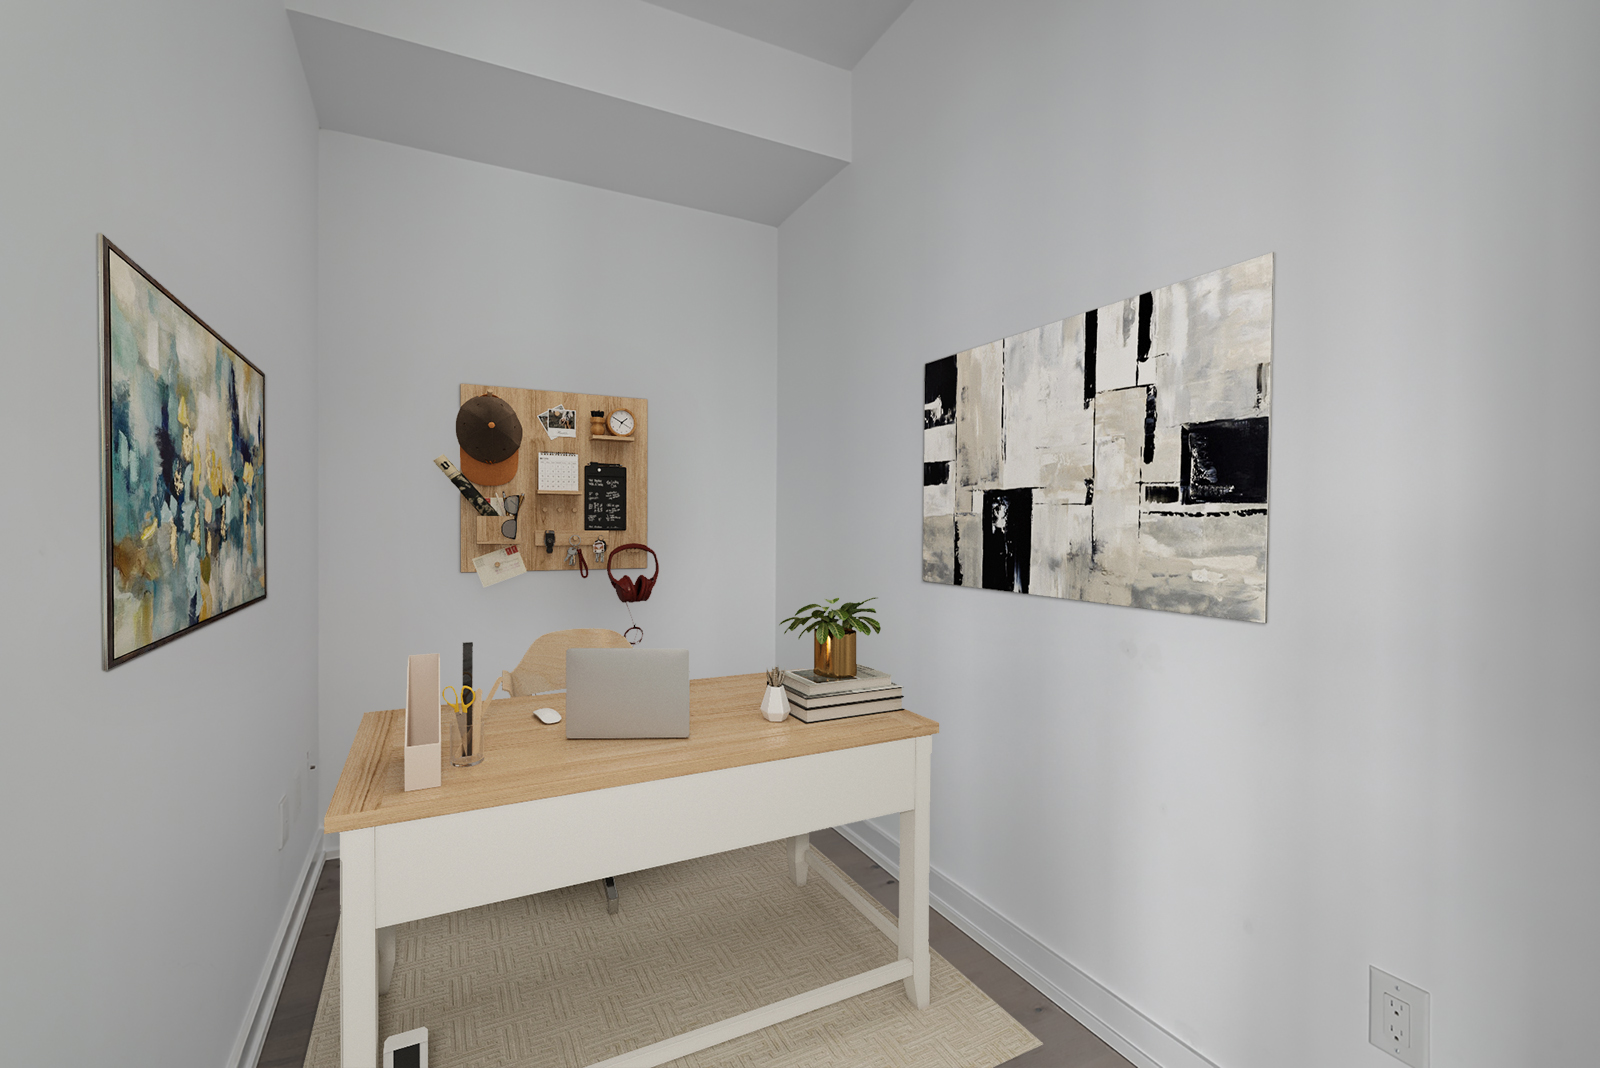 488 University Ave den with 3d-rendered desk and paintings.